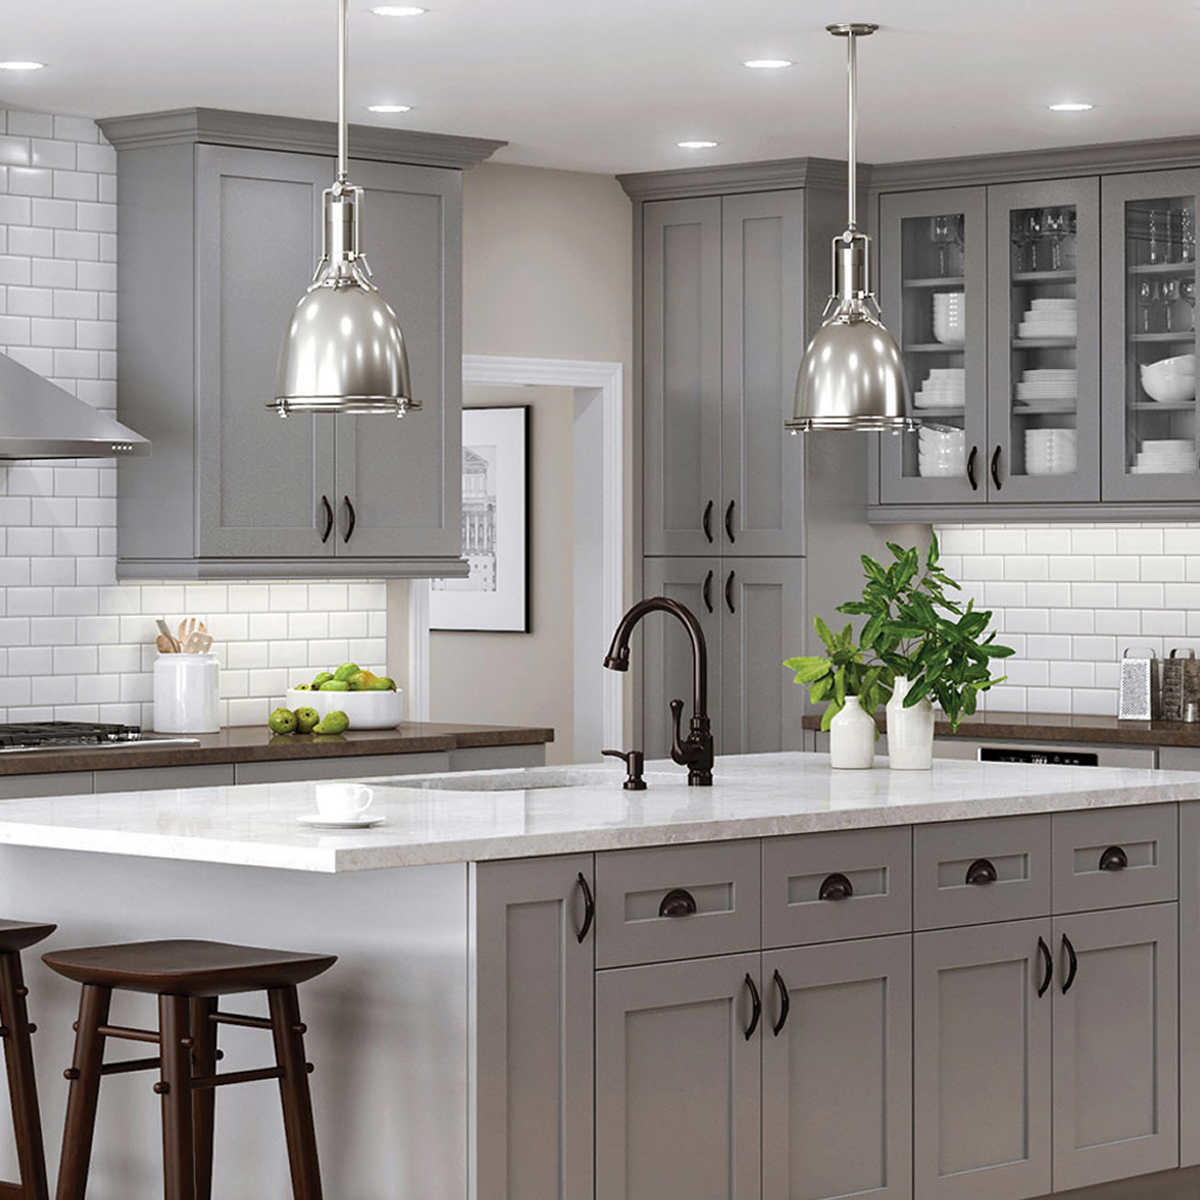 Semi Custom Kitchen And Bath Cabinets By All Wood Cabinetry Ships In 7 10 Days In 2021 Shaker Style Kitchen Cabinets Kitchen Cabinets Painted Grey Grey Kitchen Walls